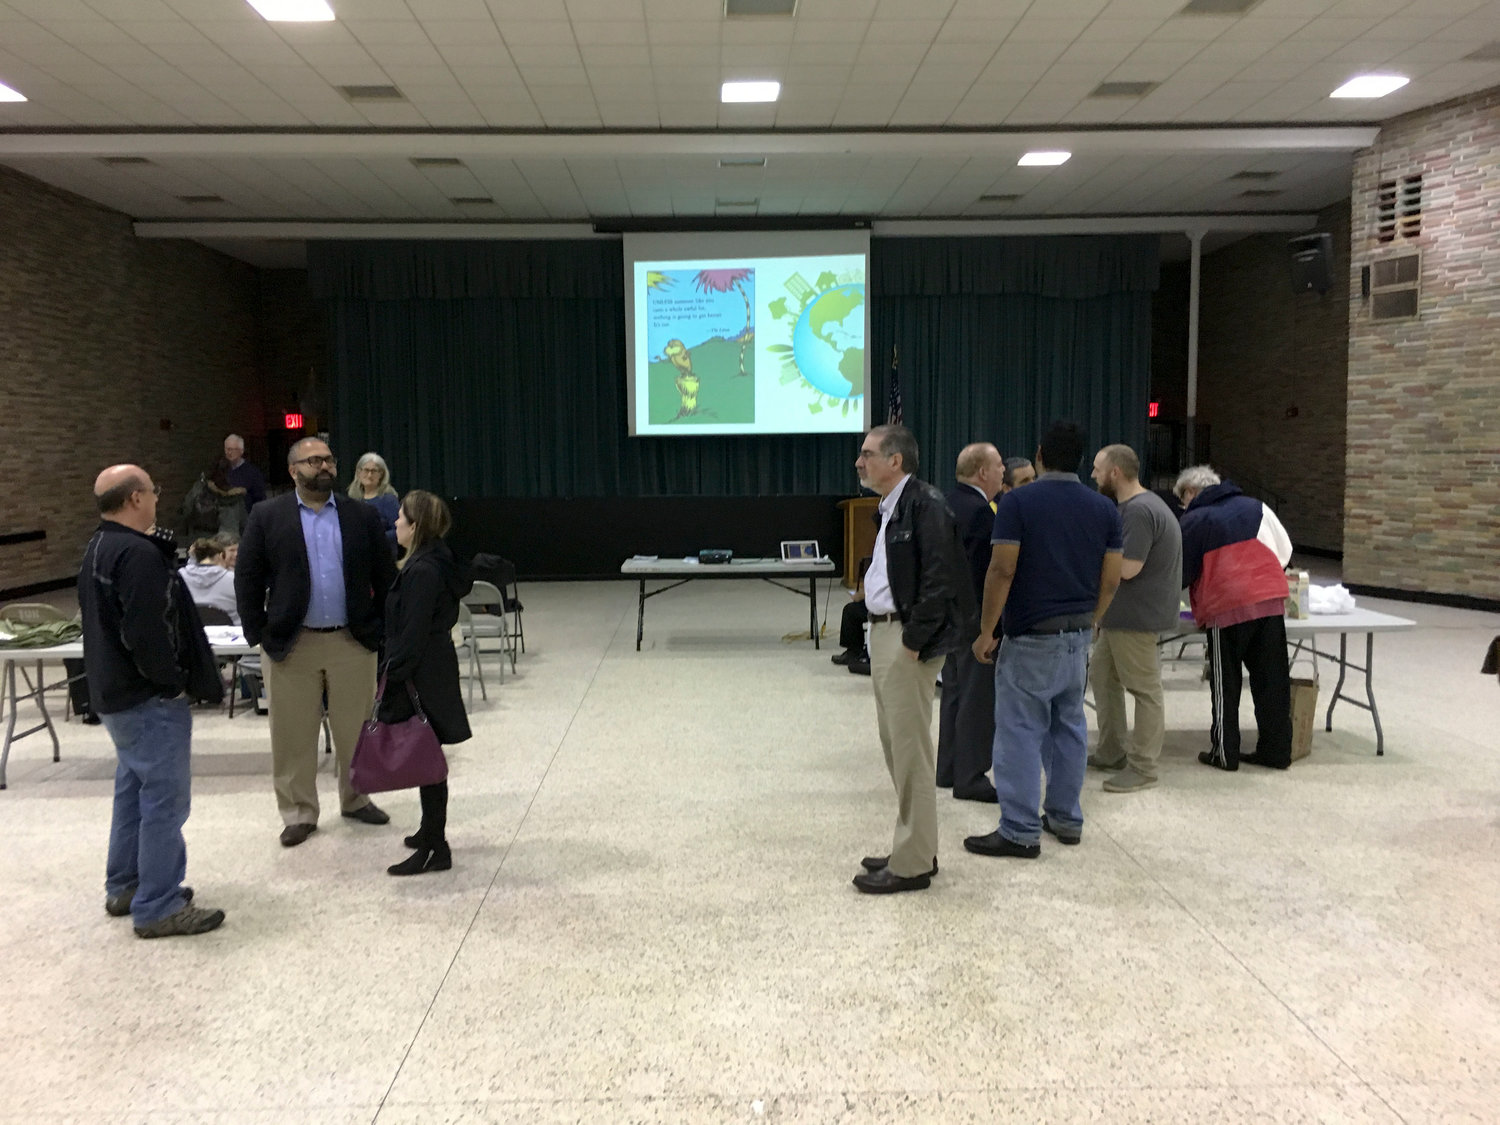 The Levittown, Seaford and Wantagh Democratic Club gathered at Levittown Hall in Hicksville for an Earth Day symposium on April 22.